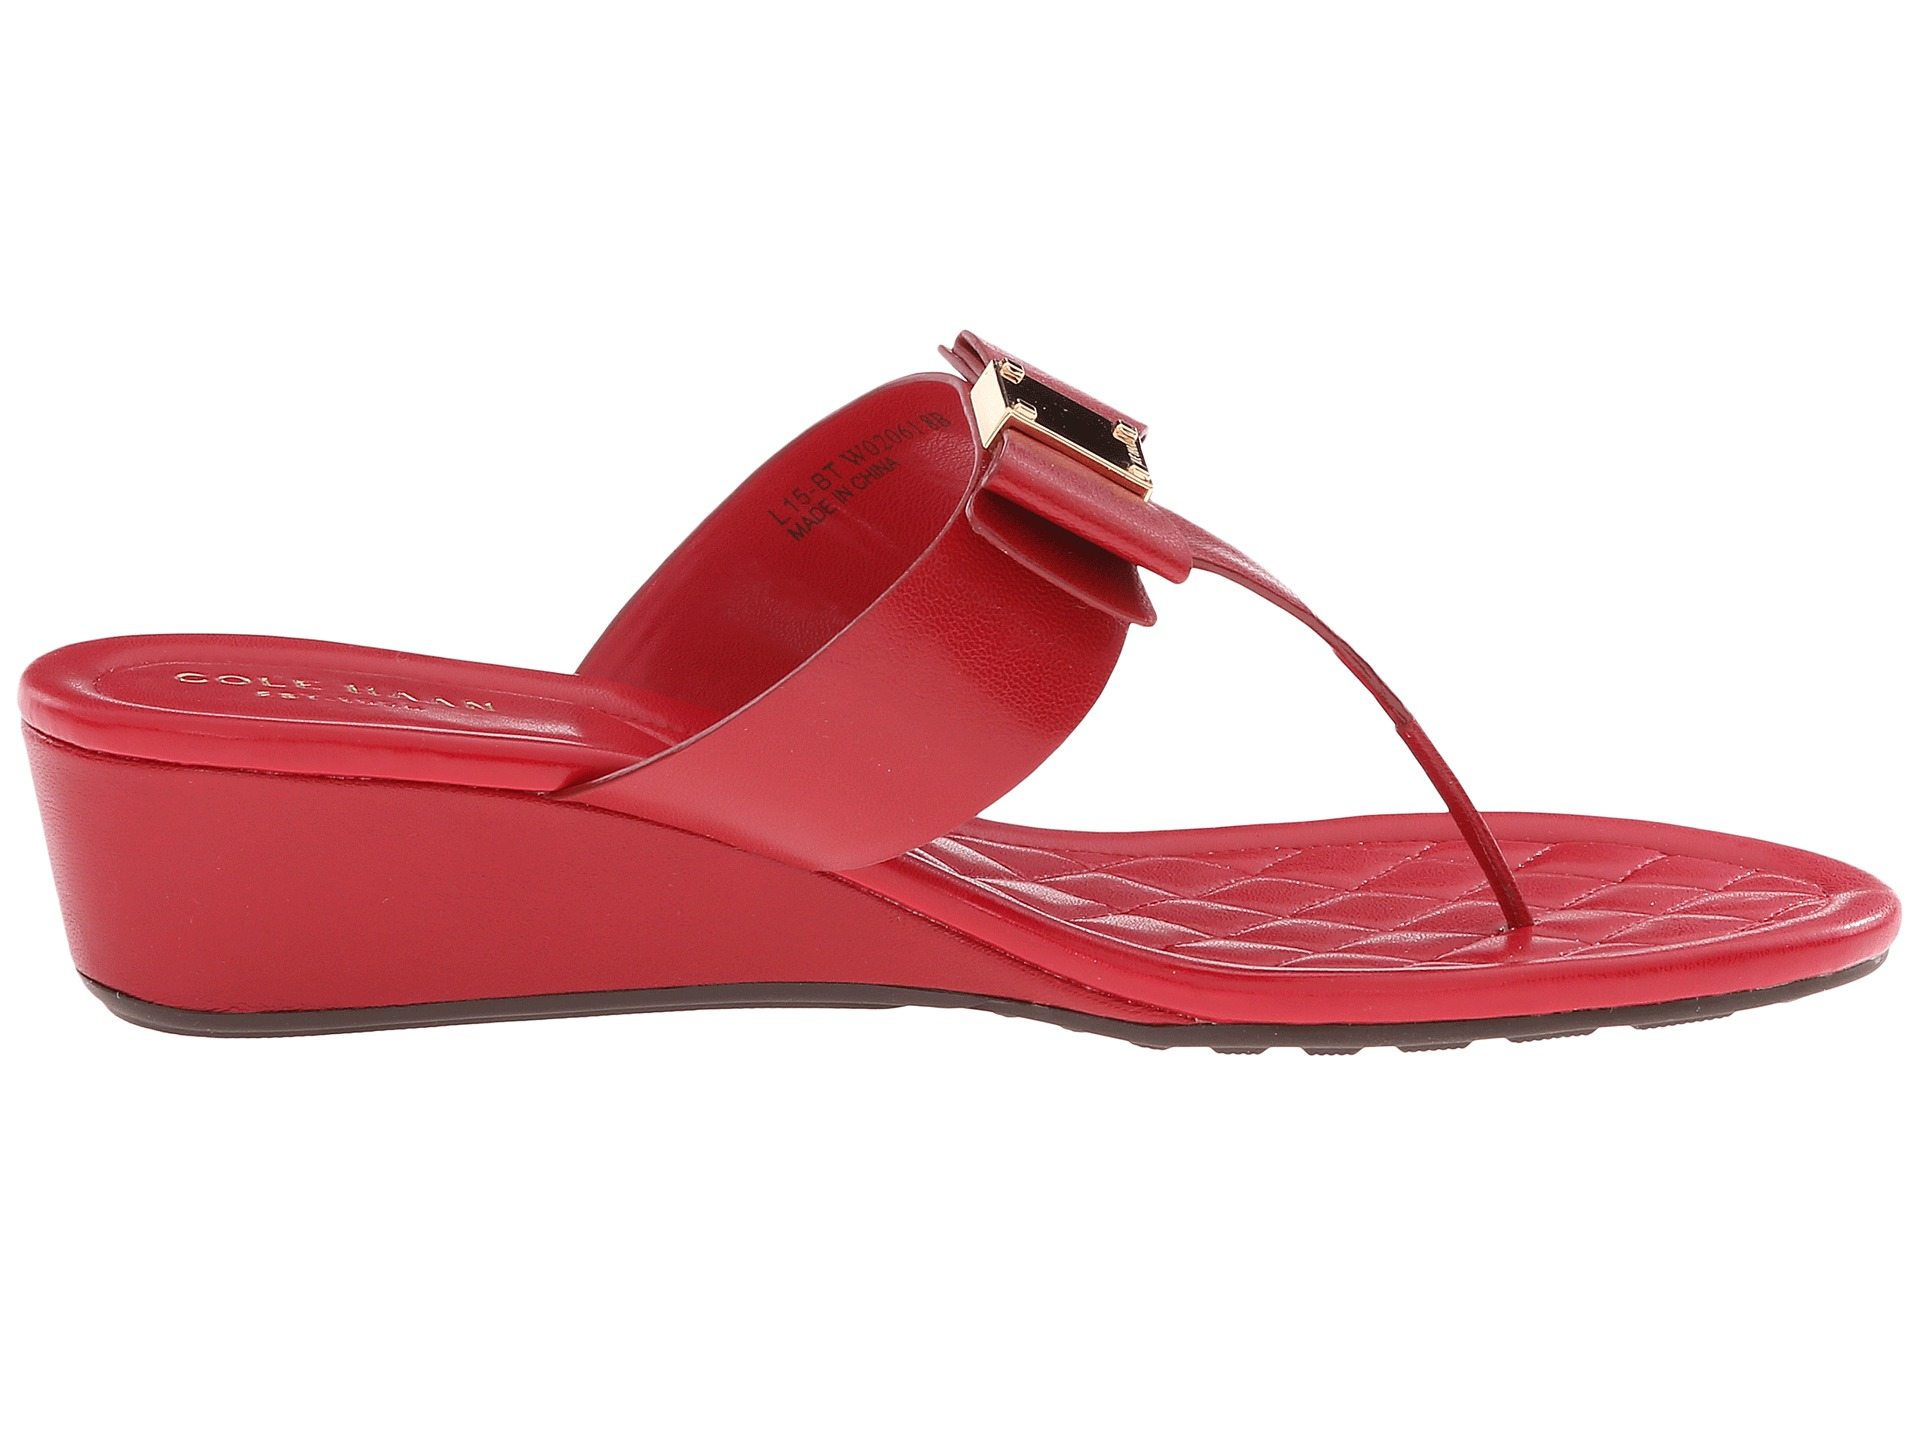 b44ae77e7245 Lyst - Cole Haan Tali Bow Sandal 40 in Red